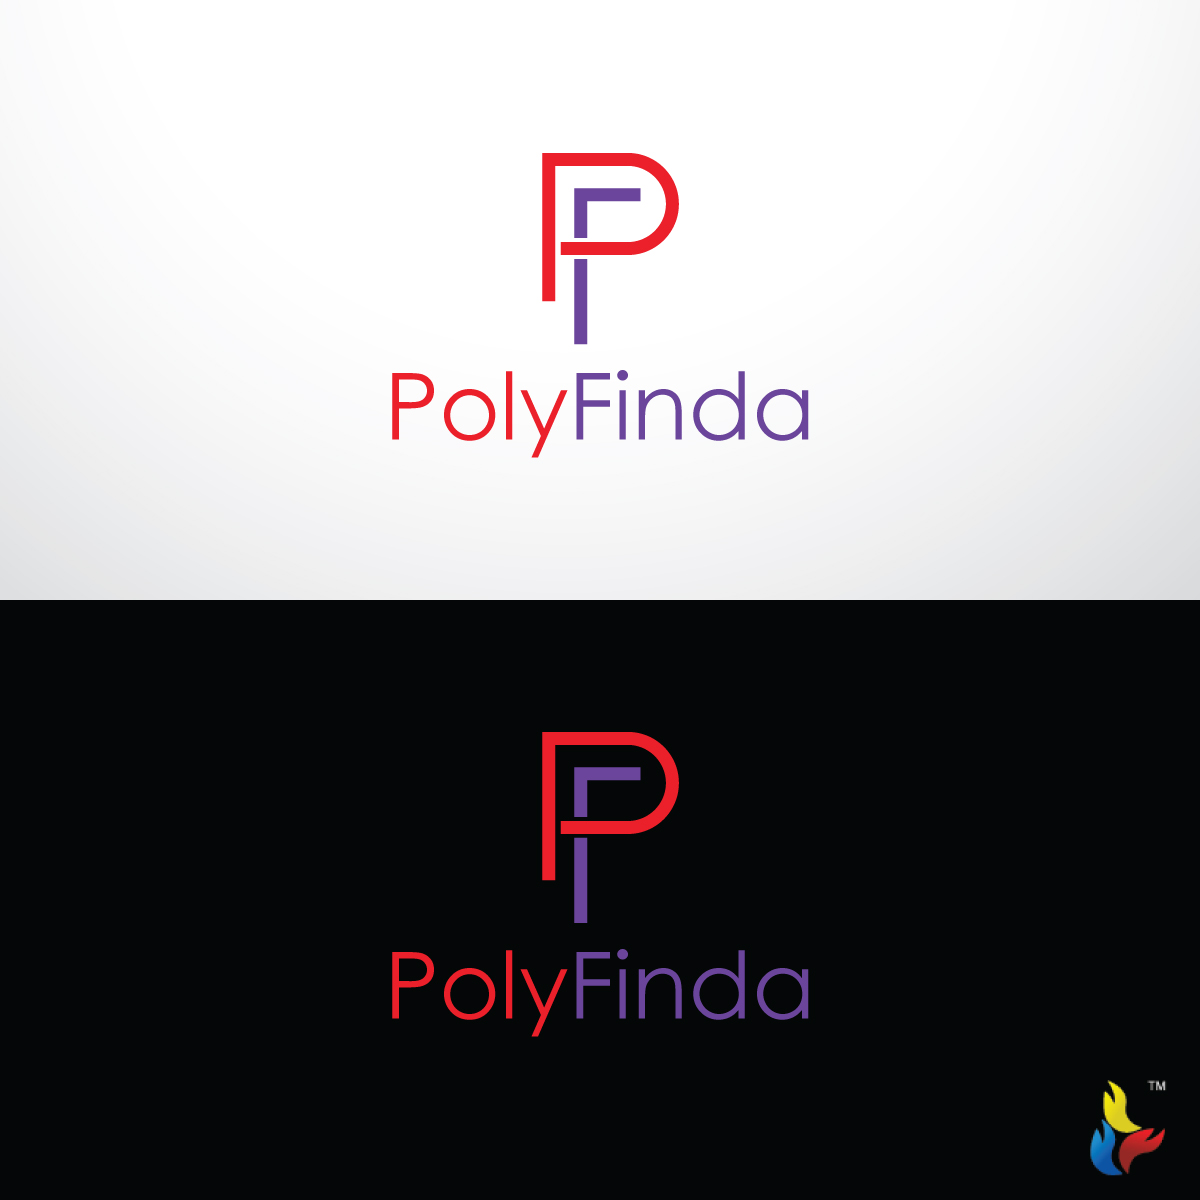 polyamorous dating app How can one find polyamorous people polyamory, and polyamorous dating grammarly's free writing app makes sure everything you type is easy to read.